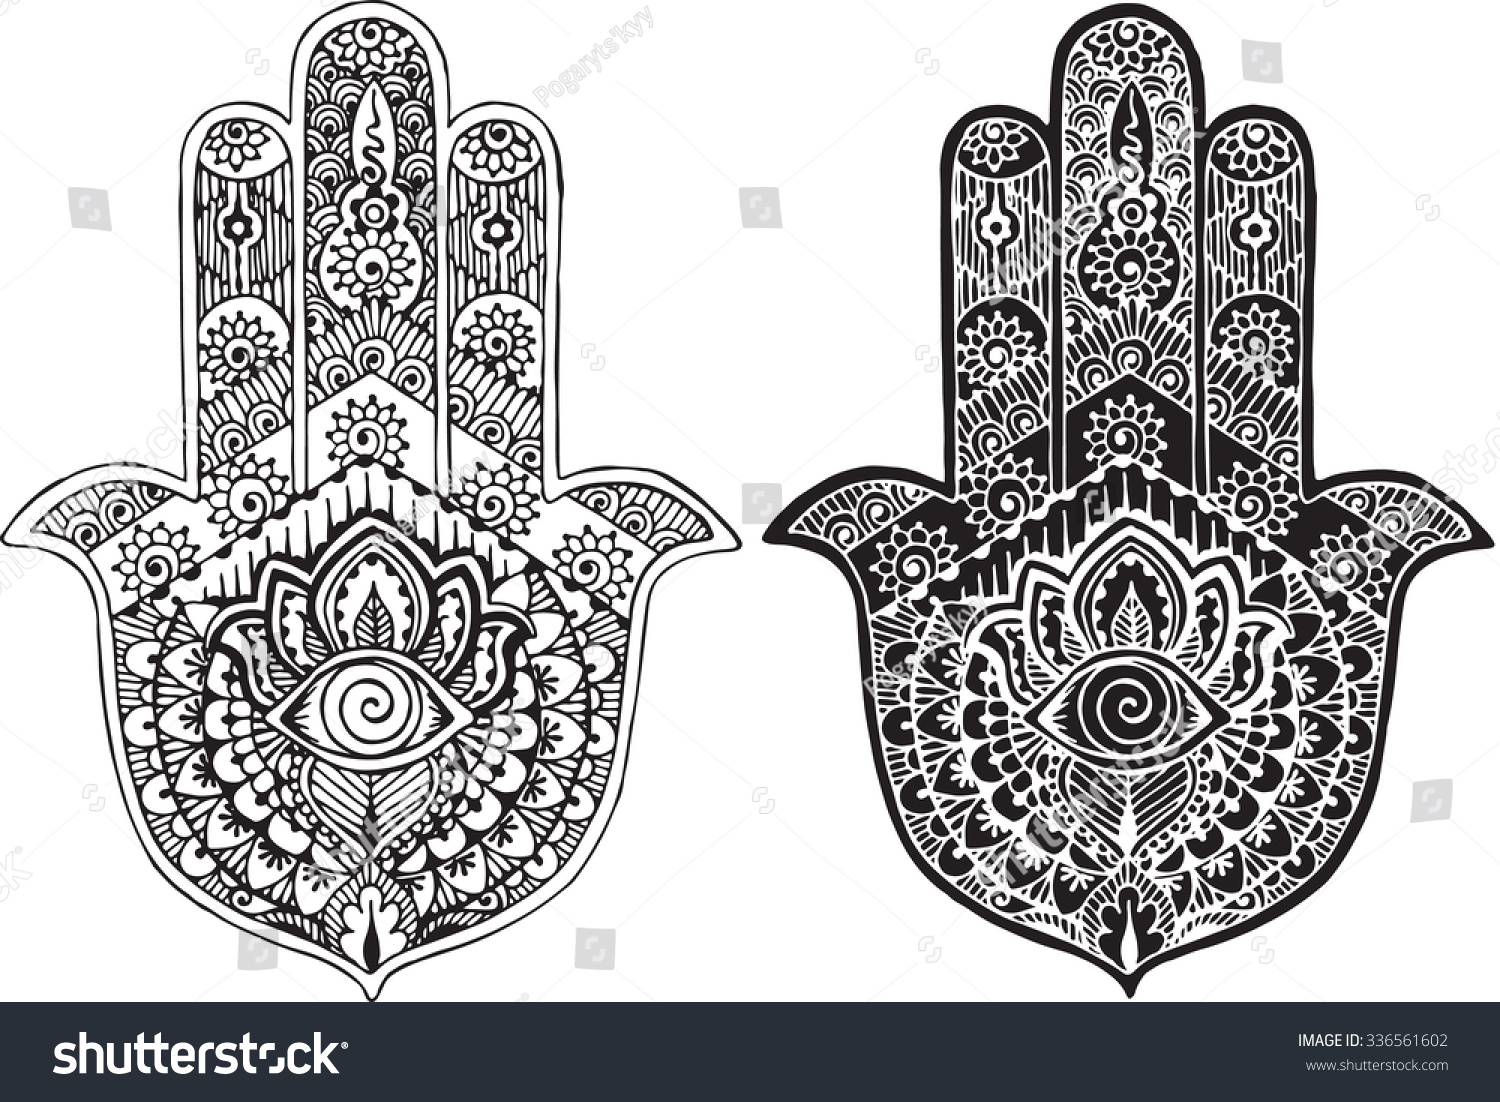 Hamsa painted in the style of mehndi